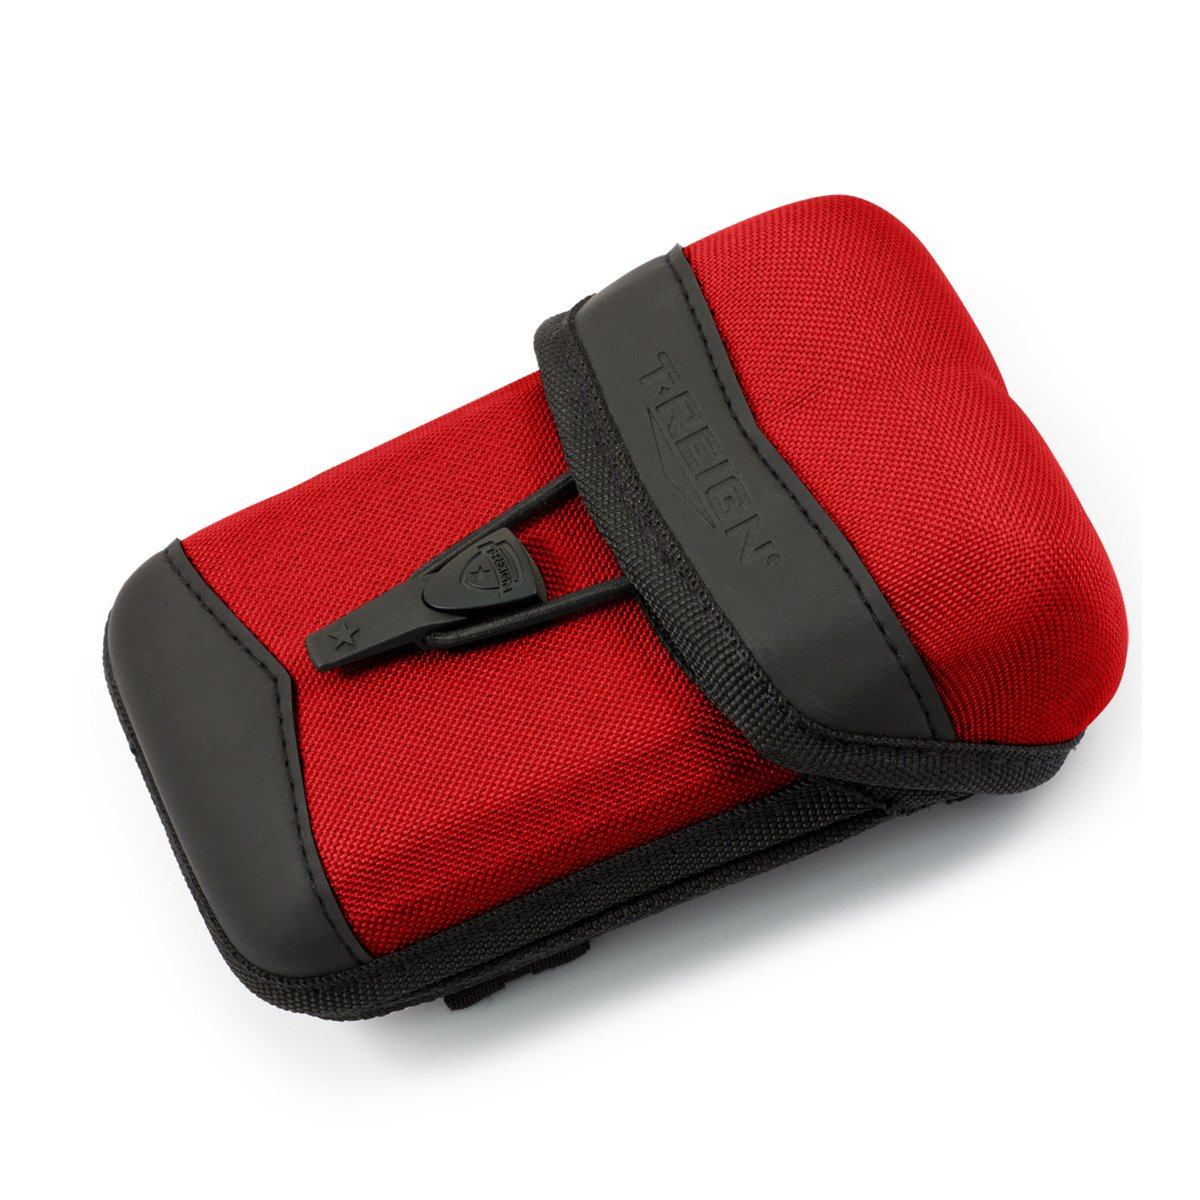 T-REIGN ProCase with Retractable 36 Kevlar Tether protects Rangefinders, GPS Units, Phones and More 0TRP-101-P